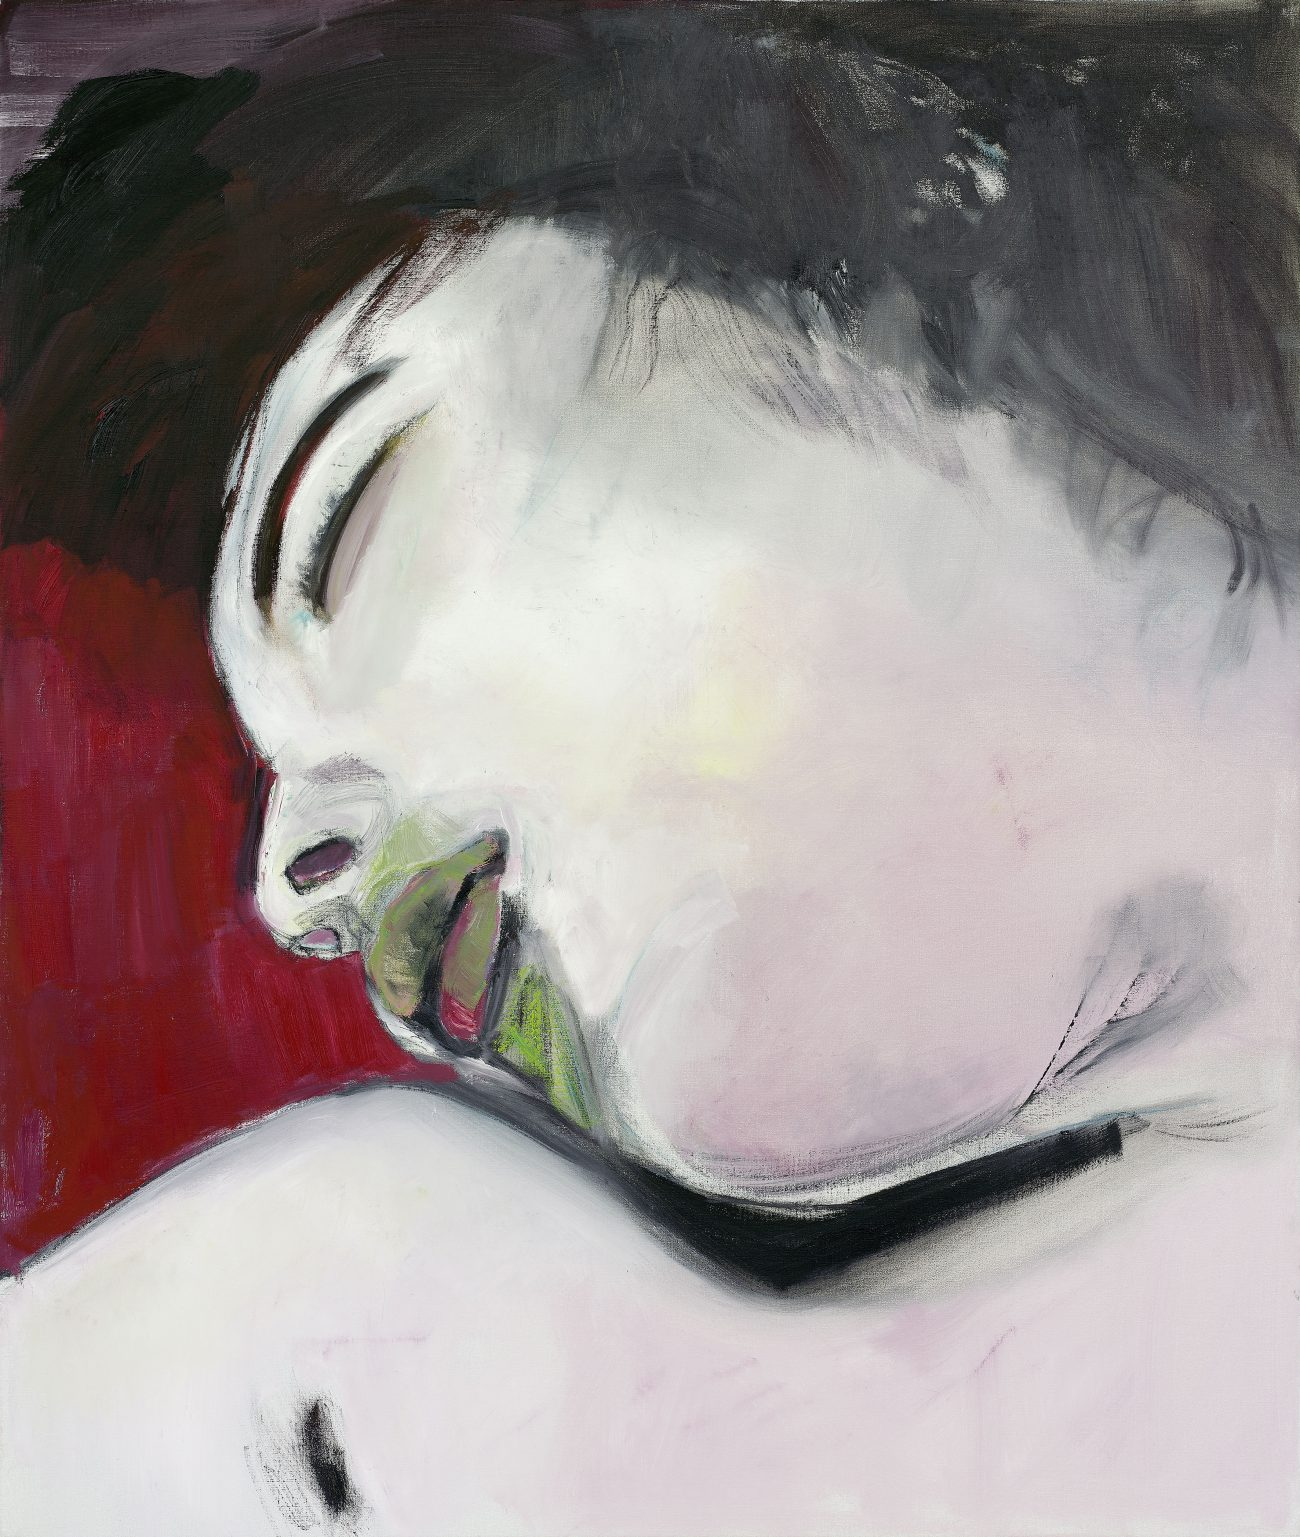 Ausstellung Cooperations, MARLENE DUMAS, BROKEN WHITE, 2006, Öl auf Leinwand, 130 x 110 cm, Fondation Beyeler, Art On Screen - News - [AOS] Magazine